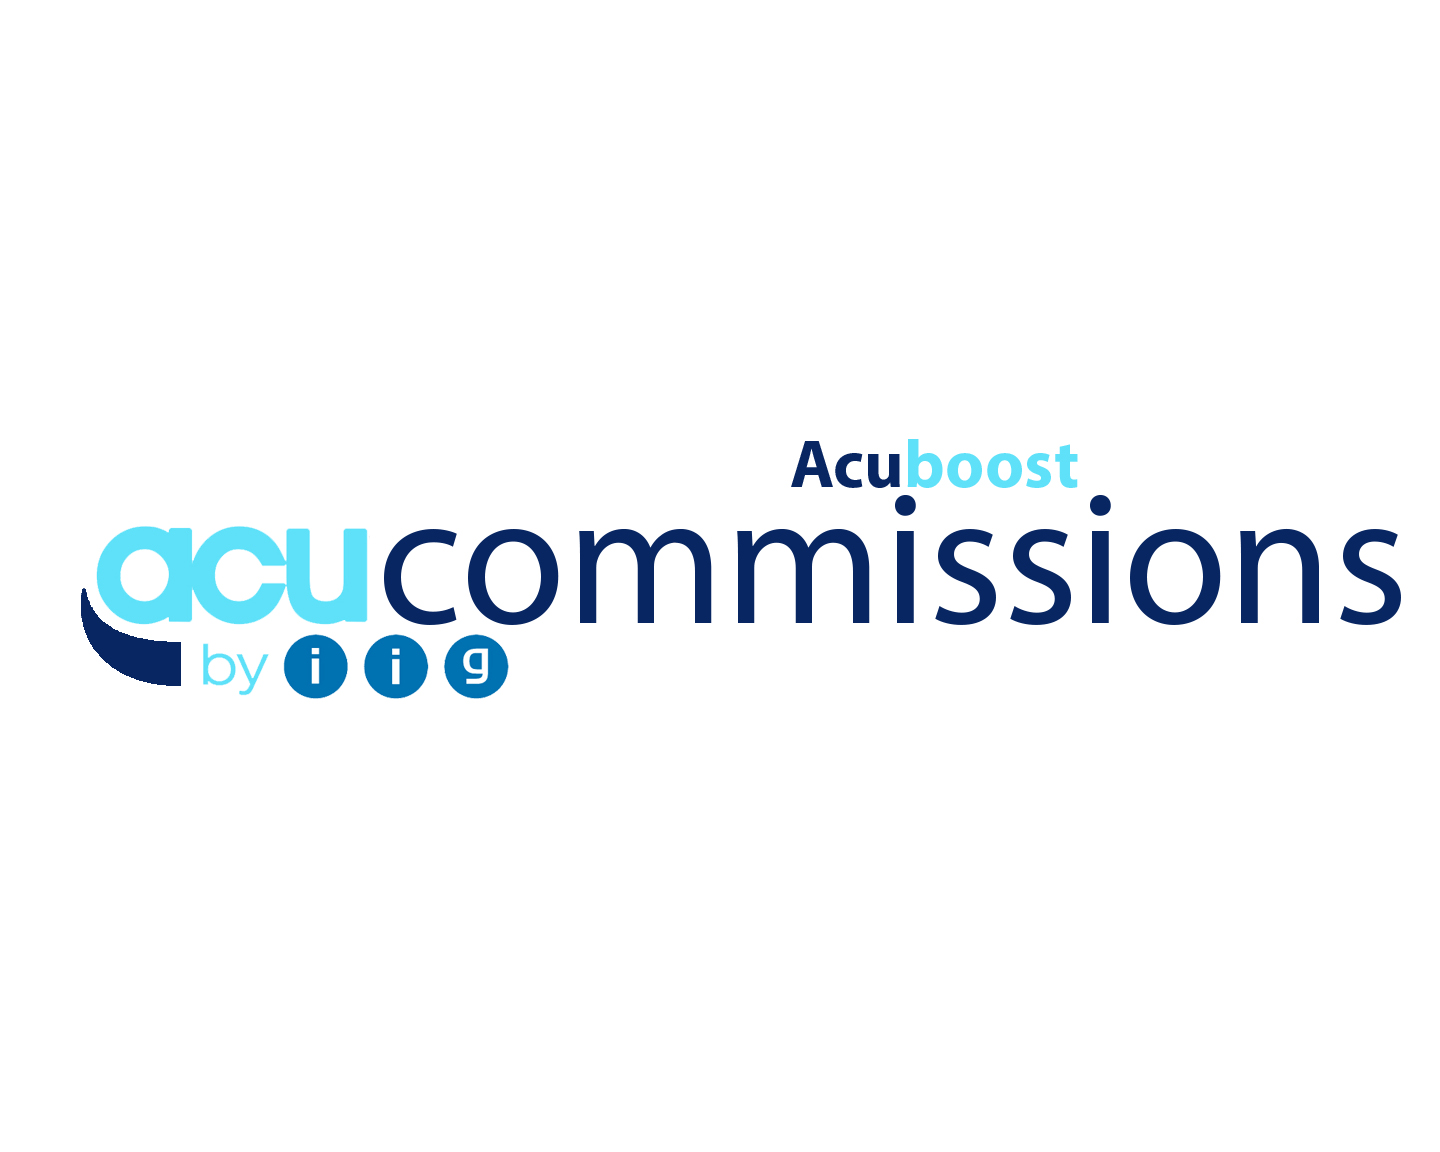 AcuSalesperson Commission Processing - Information Integration Group